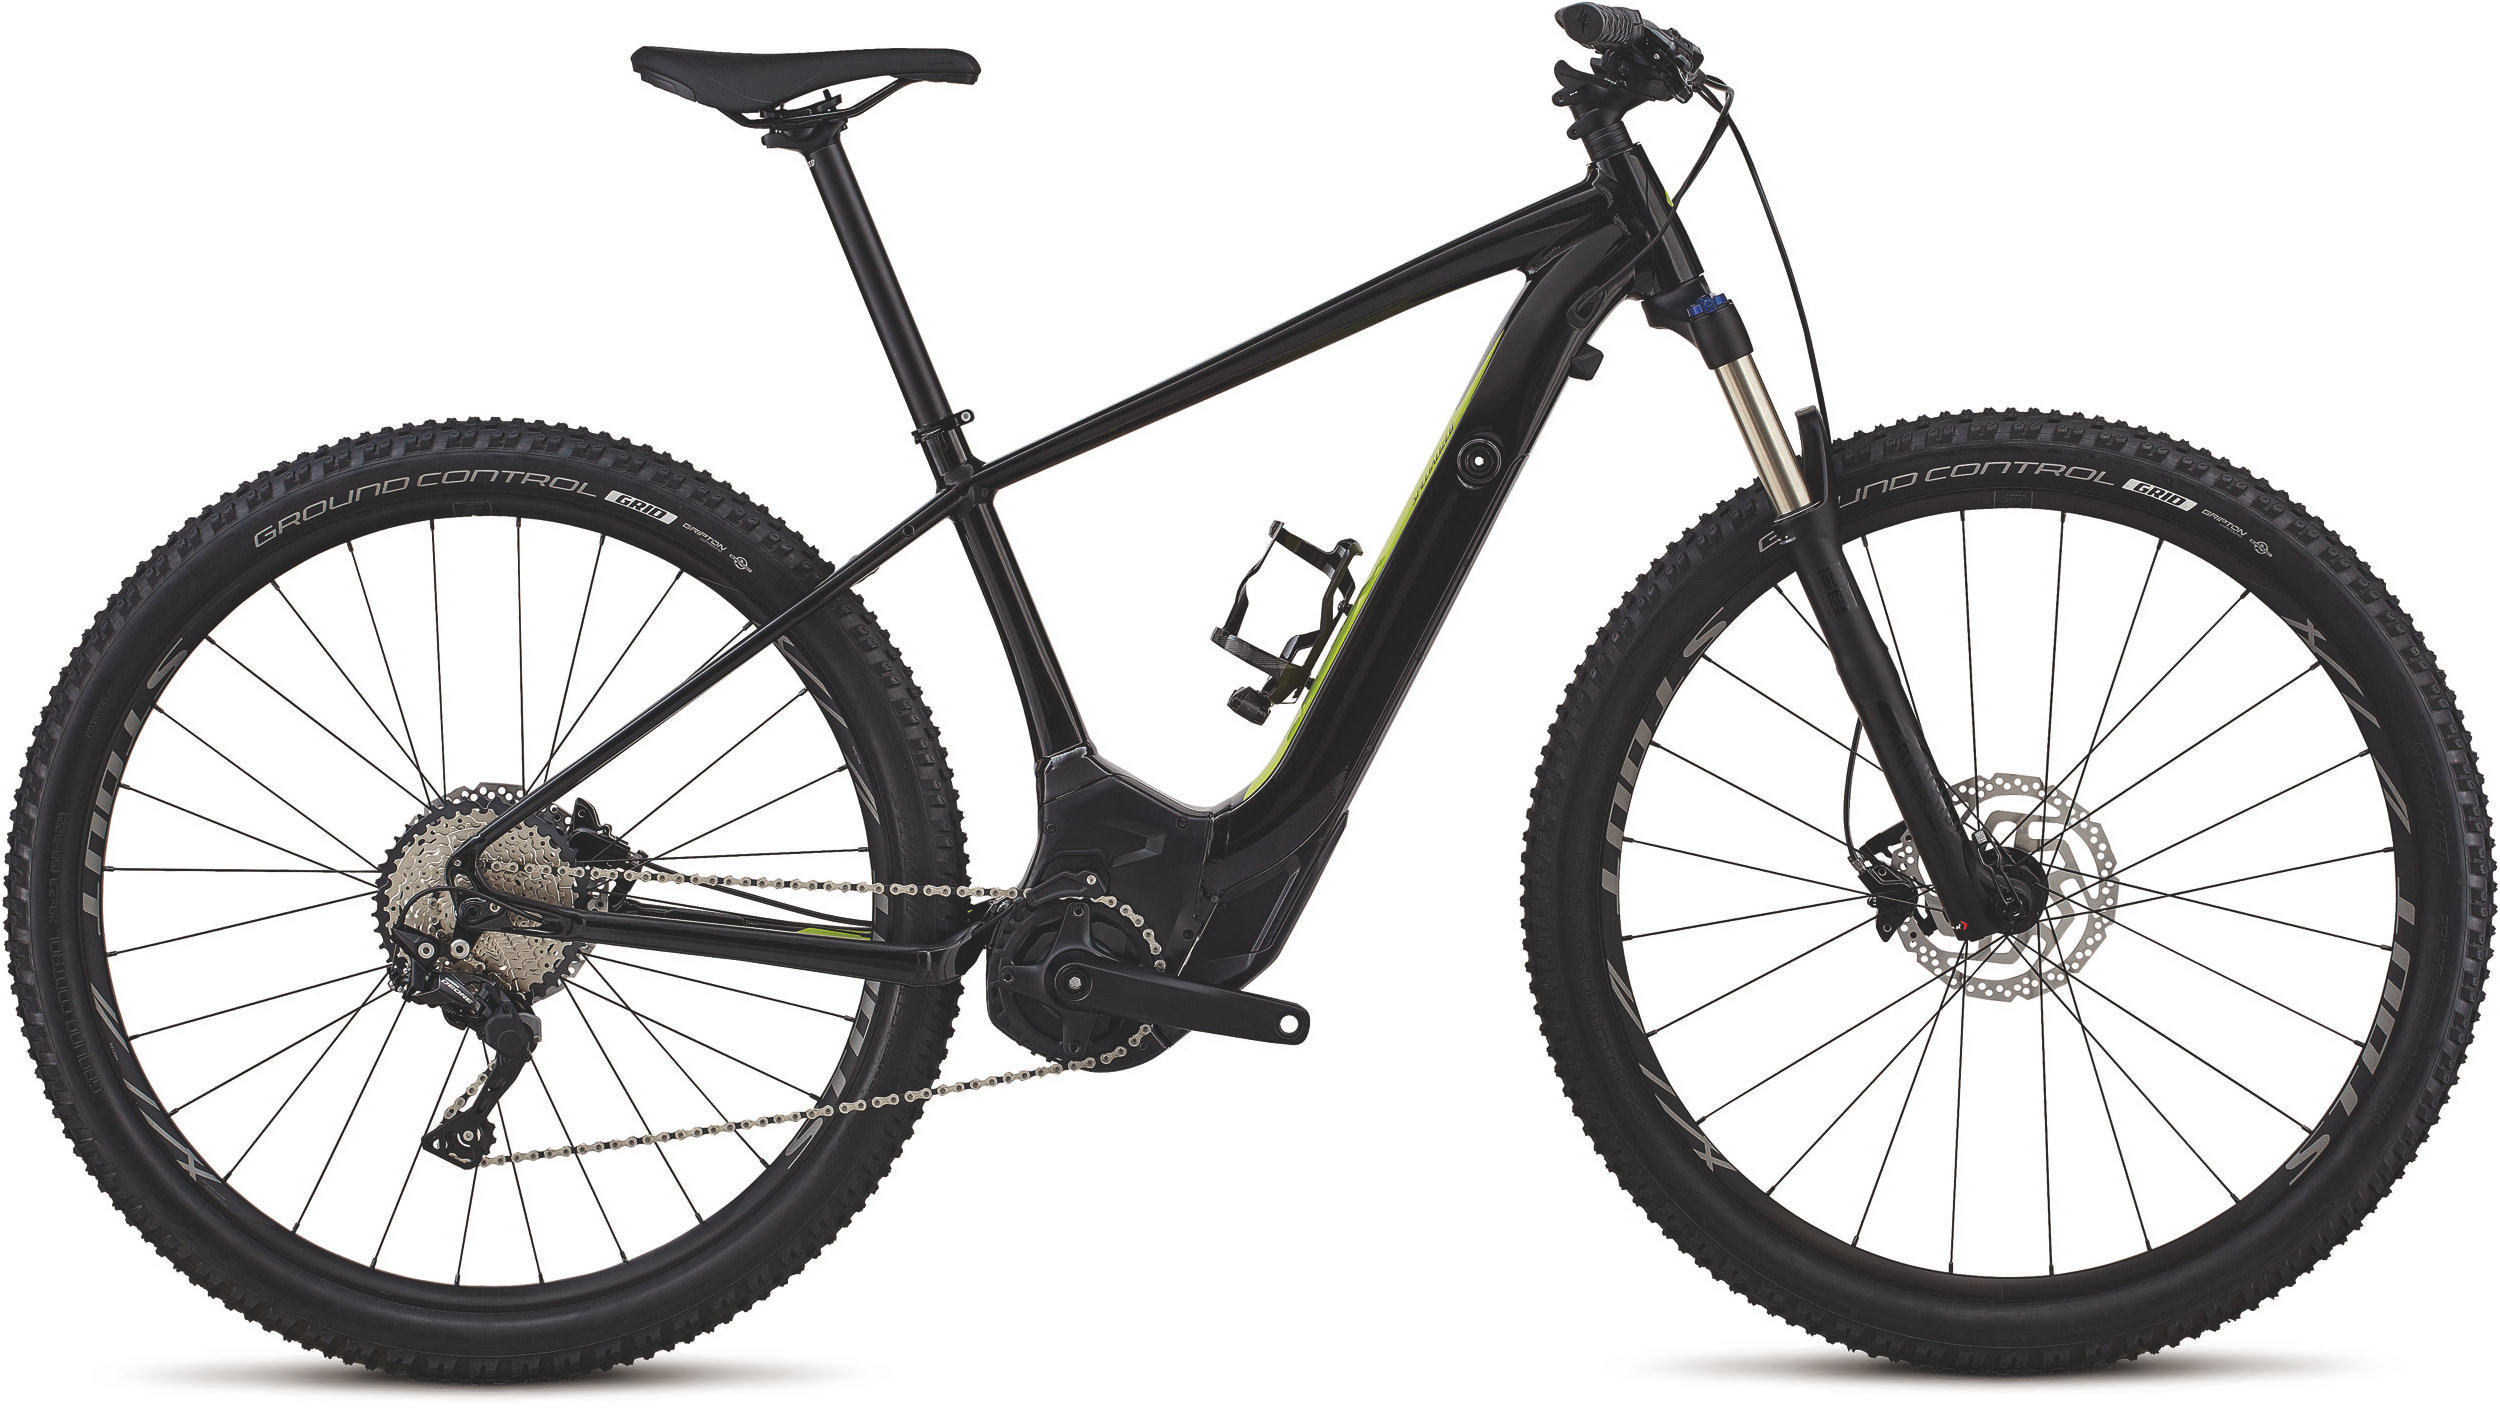 Specialized Men´s Turbo Levo Hardtail 29 Black / Hyper S - Bike Maniac